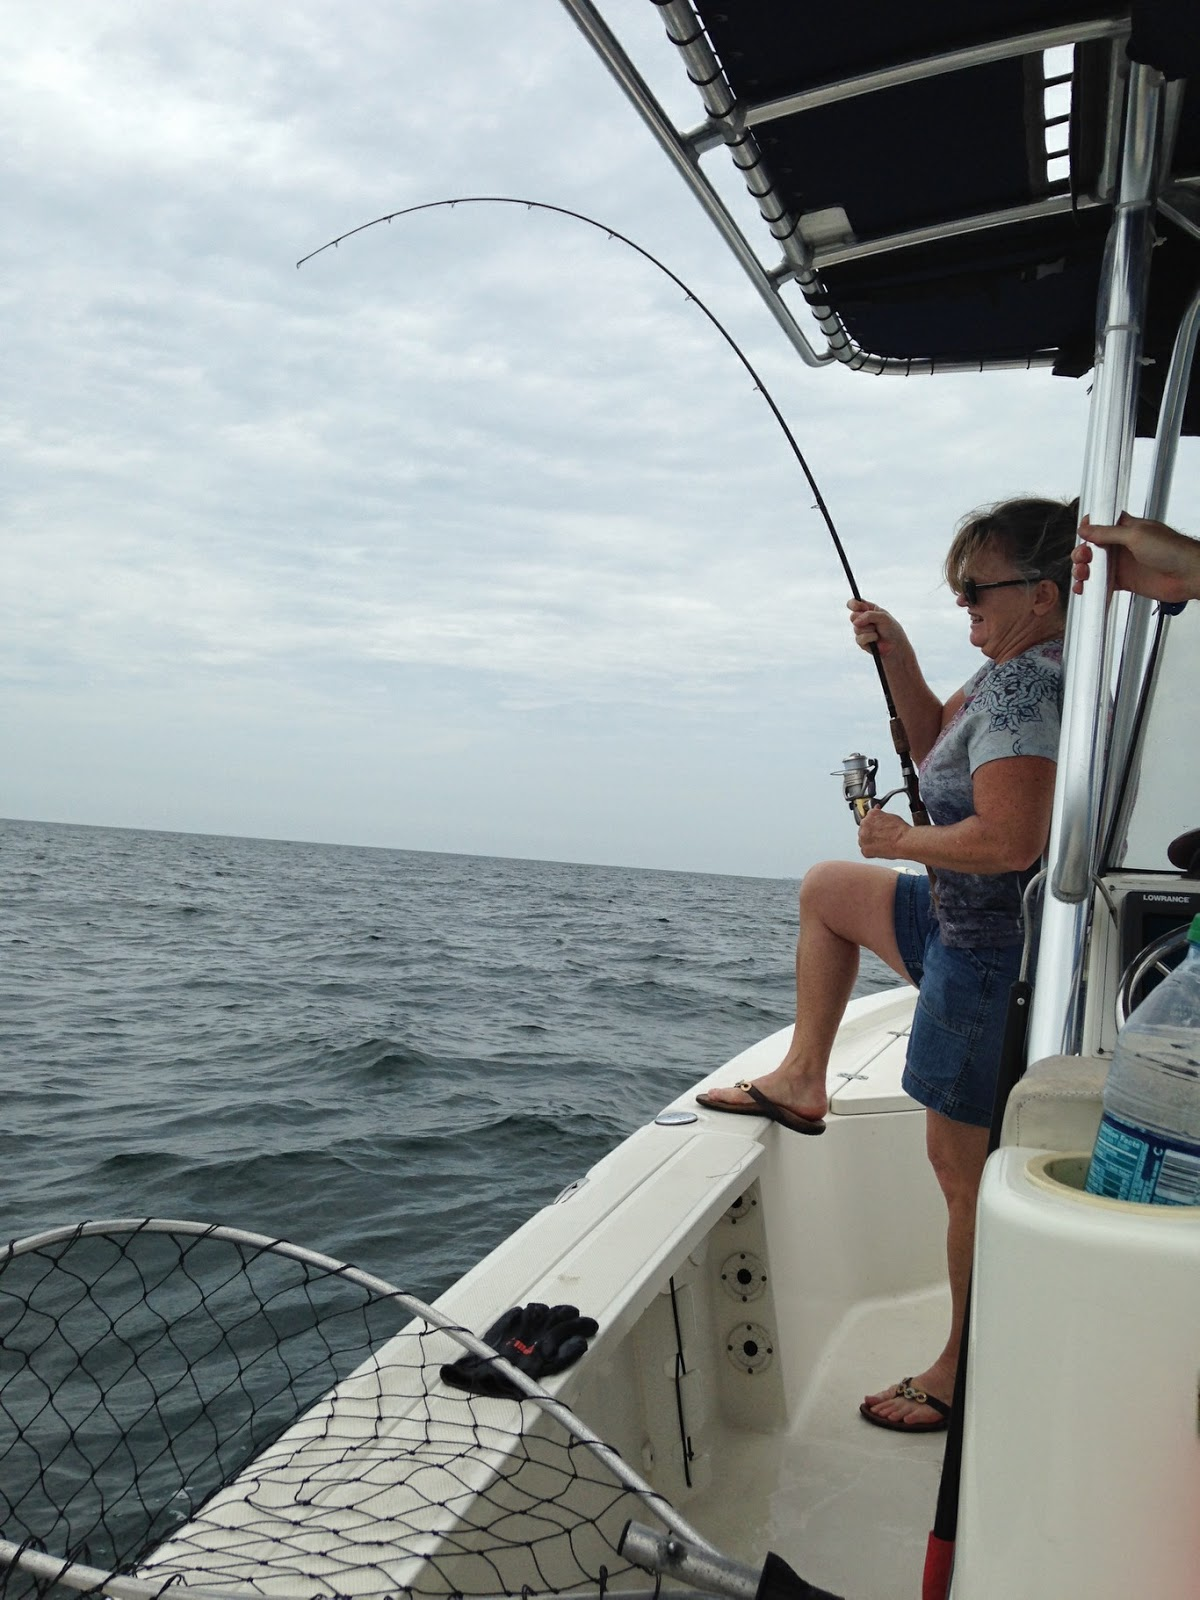 Panacea Fishing - Terri